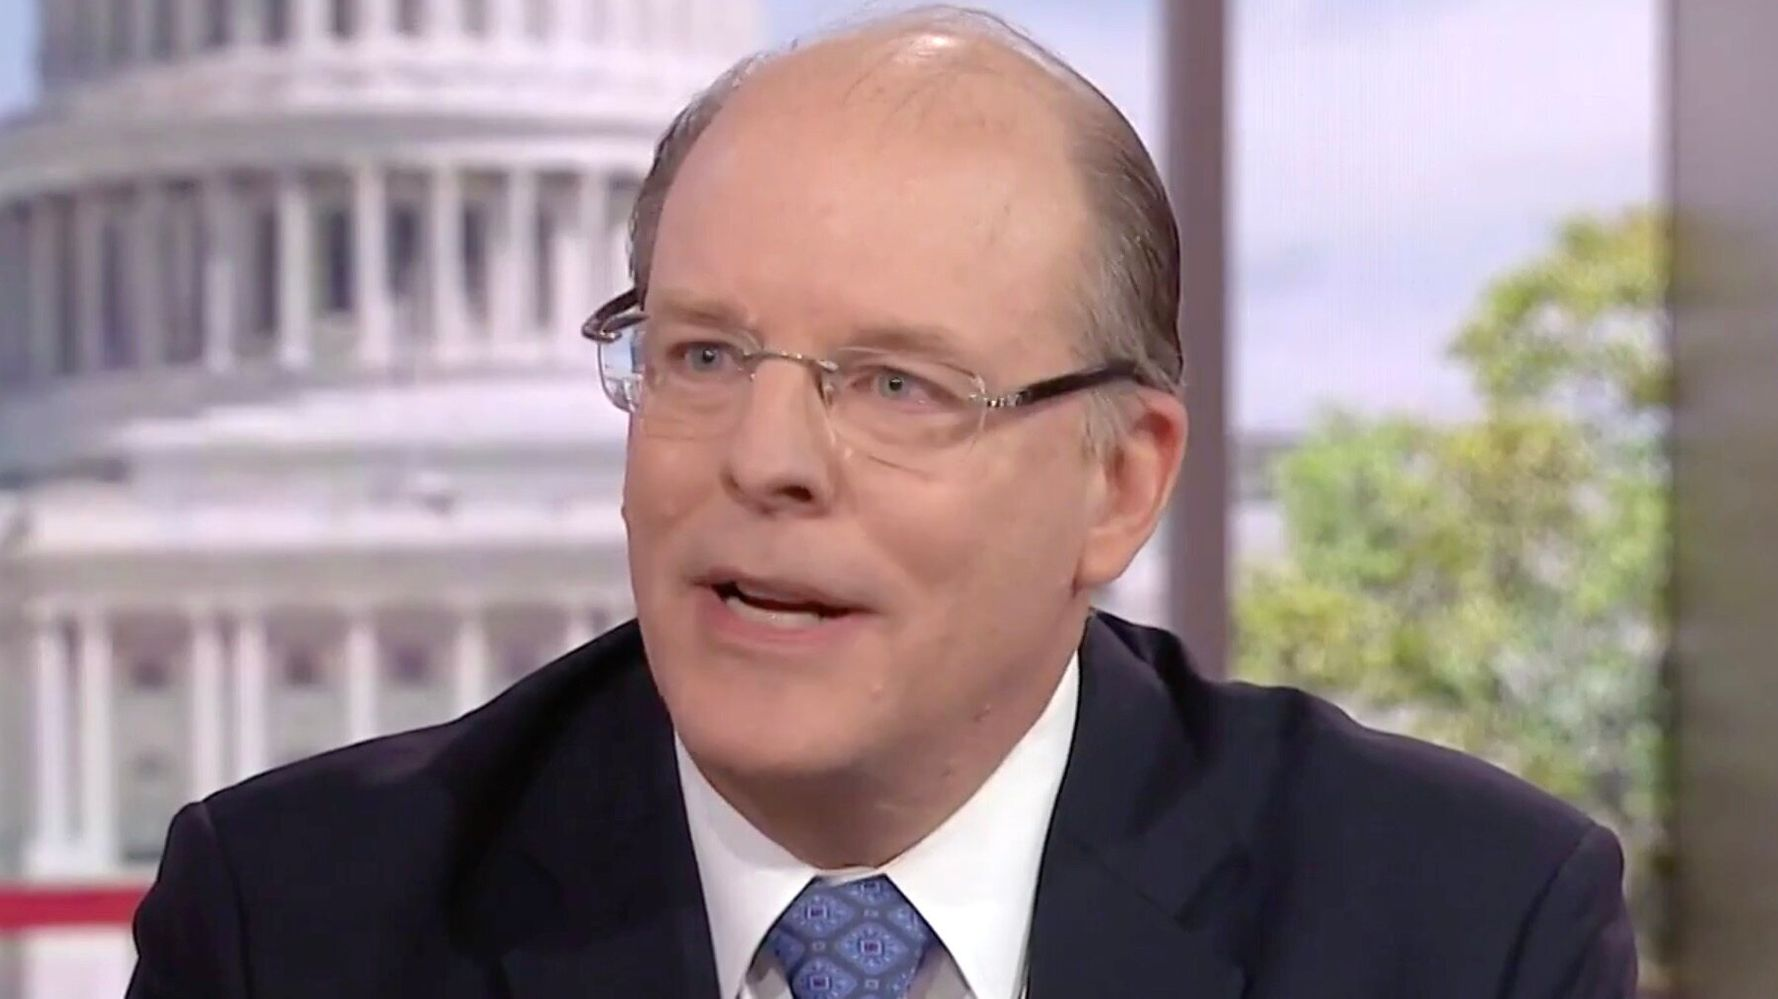 Ex-Bush Aide Peter Wehner Tells Evangelicals What Trump Really Thinks Of Them